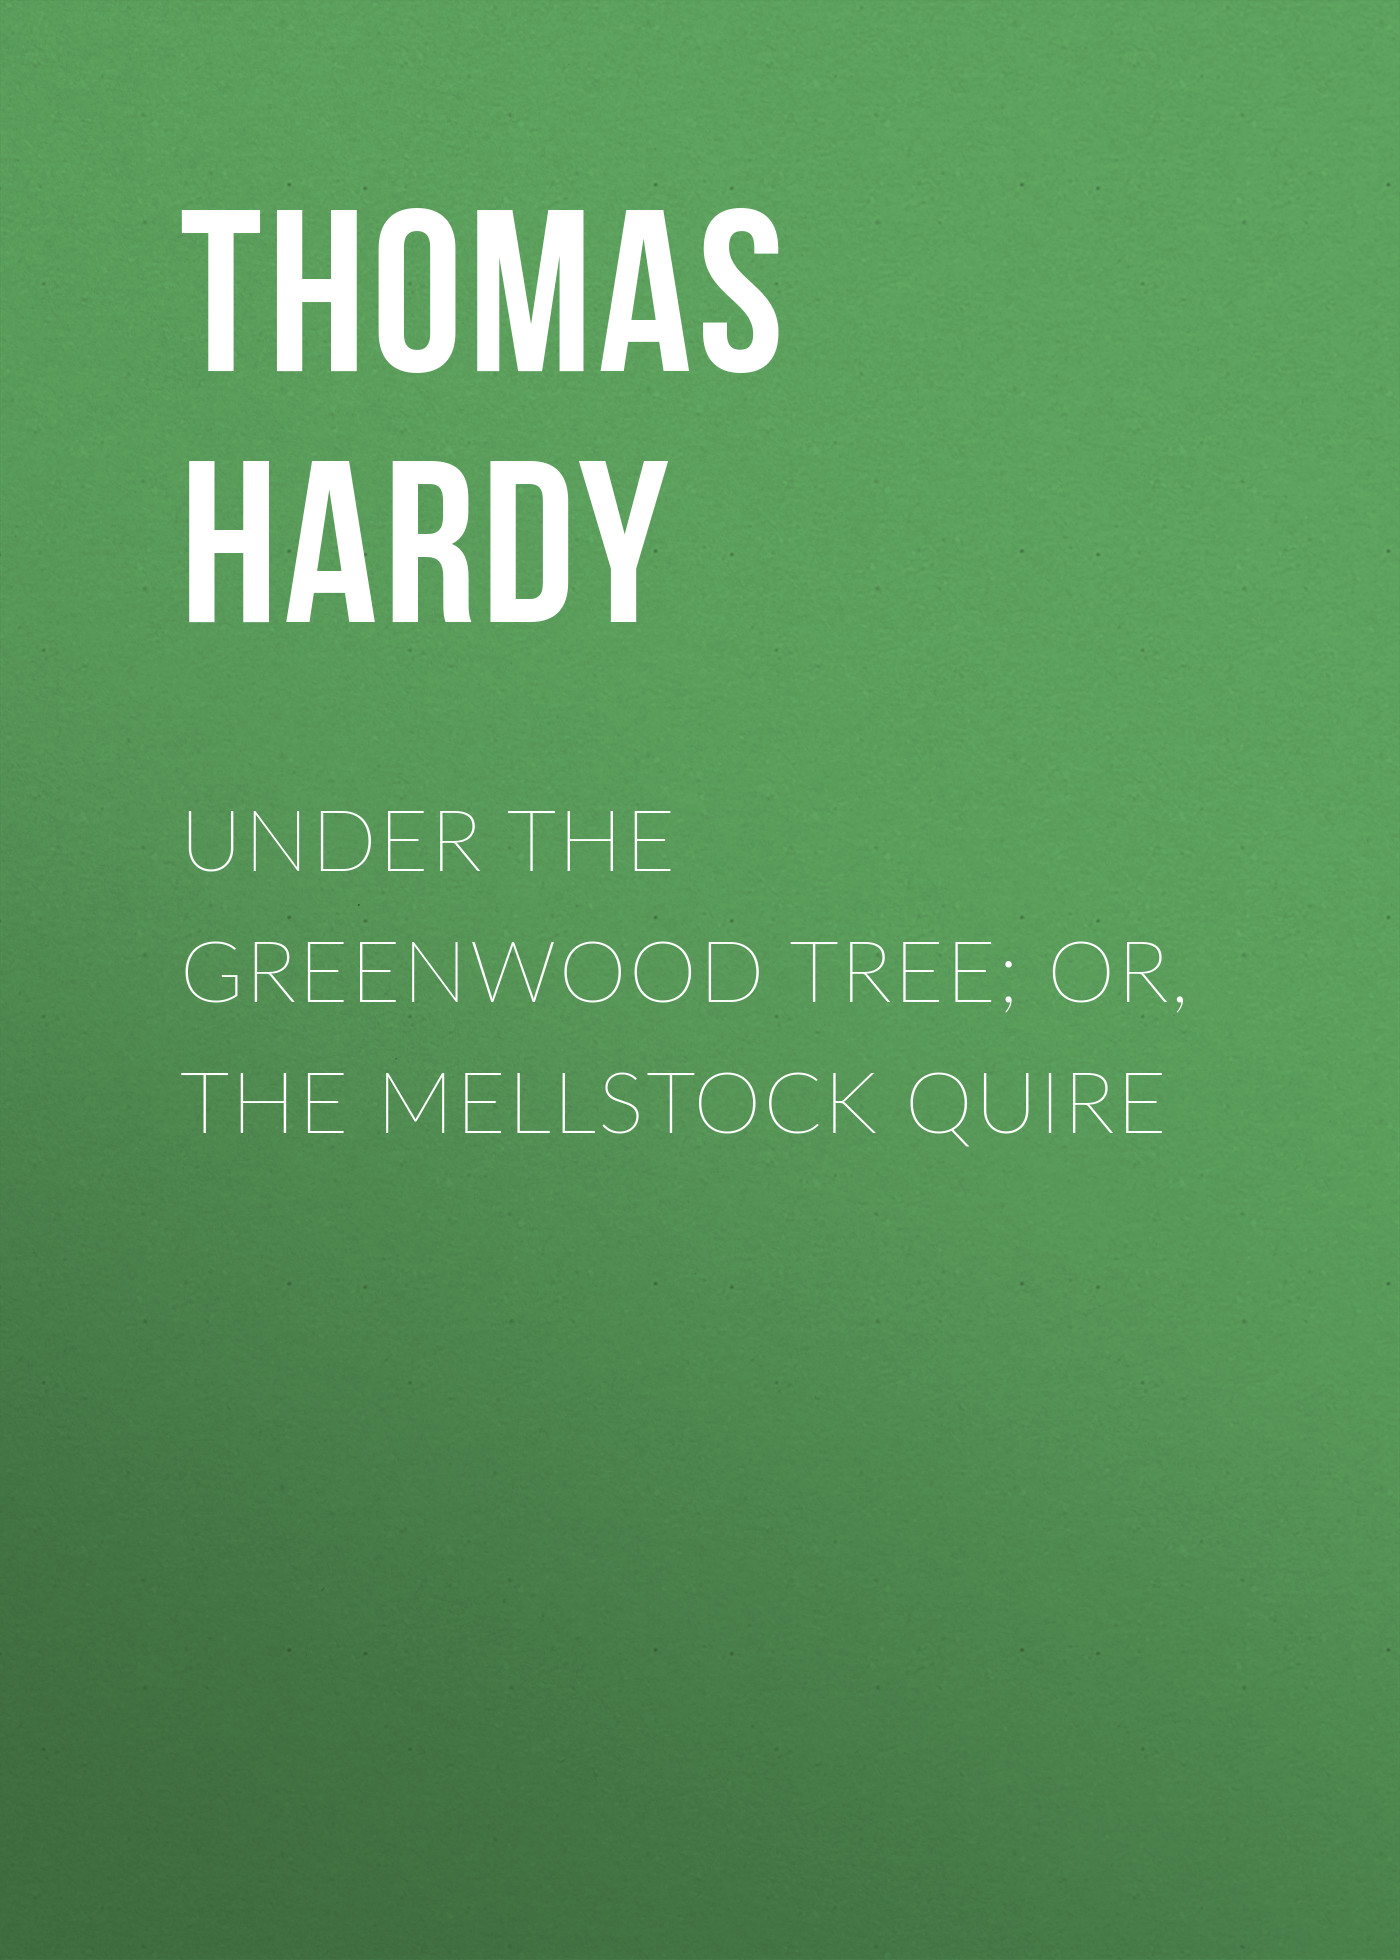 Thomas Hardy Under the Greenwood Tree; Or, The Mellstock Quire jonny greenwood jonny greenwood the master lp cd